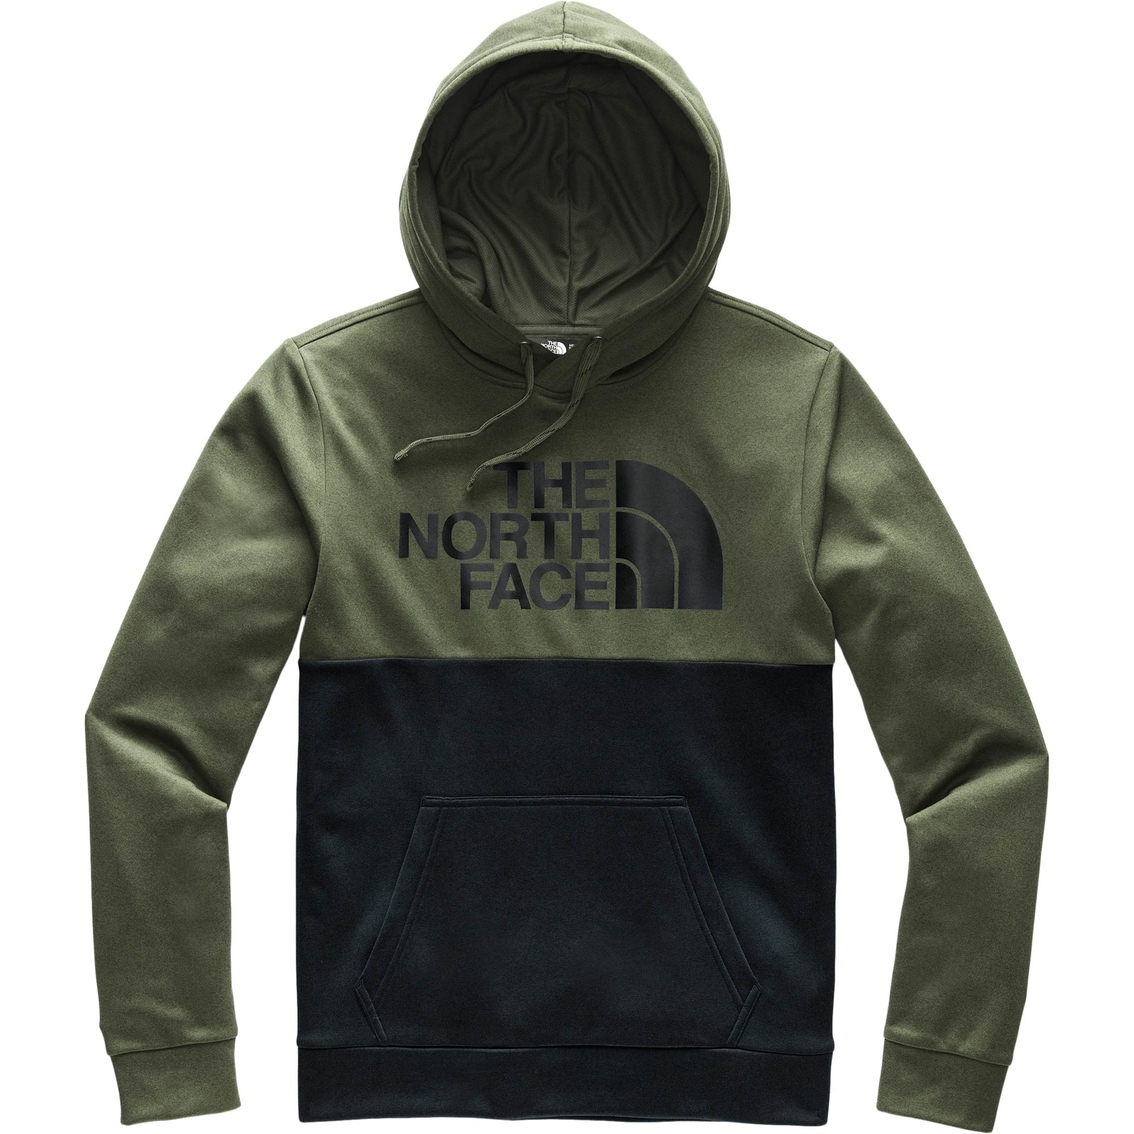 The North Face Surgent Bloc Pullover Hoodie Sweatshirts Hoodies Clothing Accessories Shop The Exchange